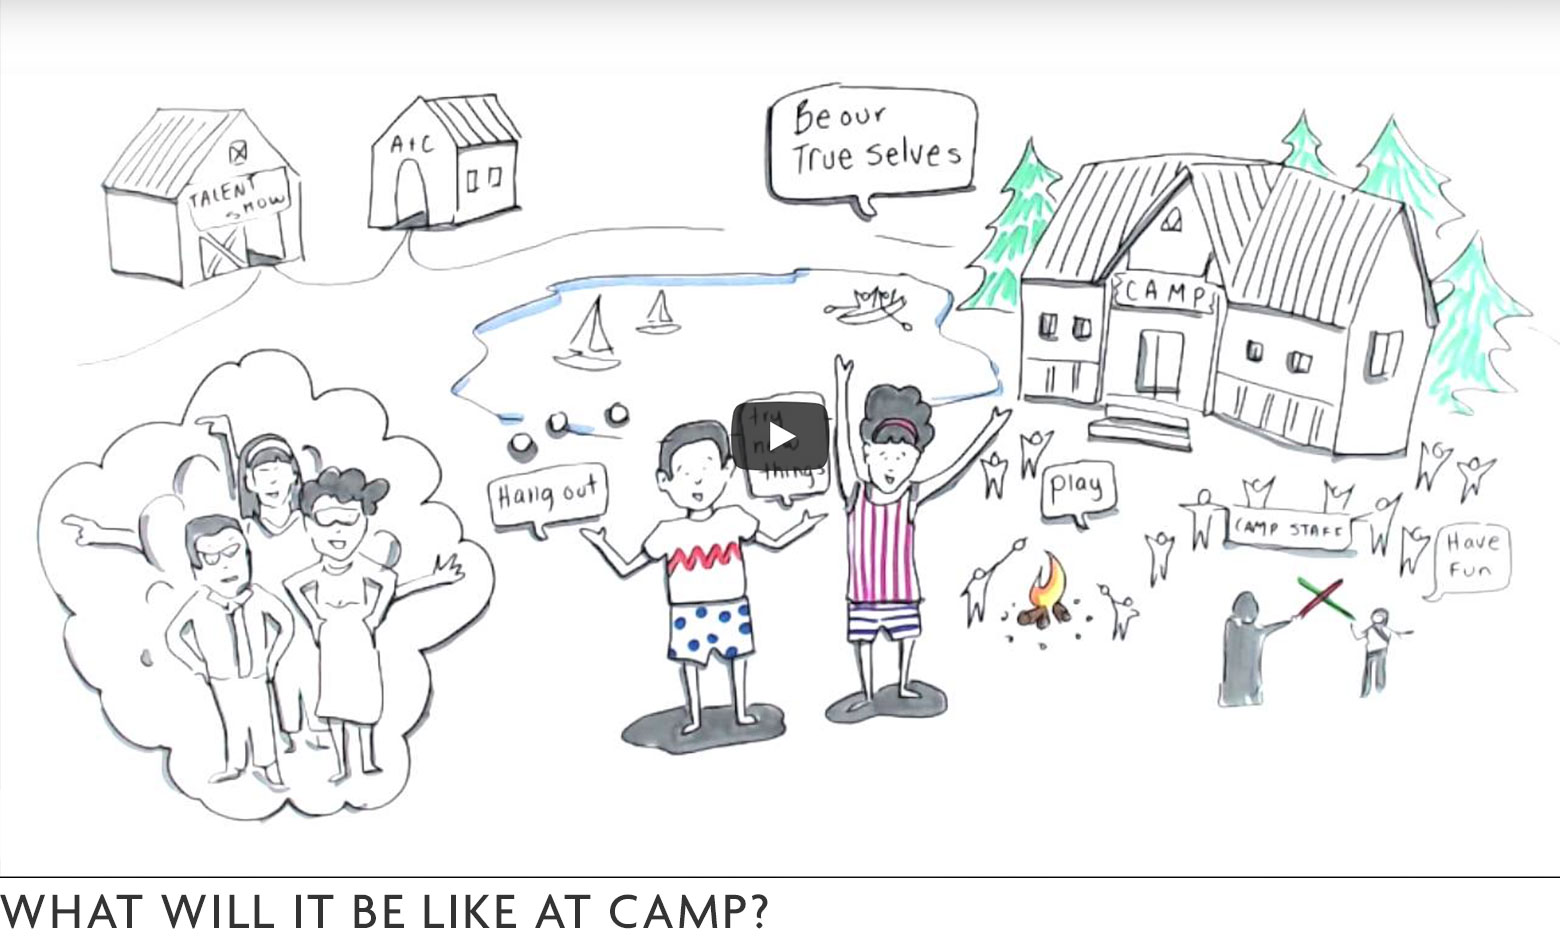 What will it be like at Camp?